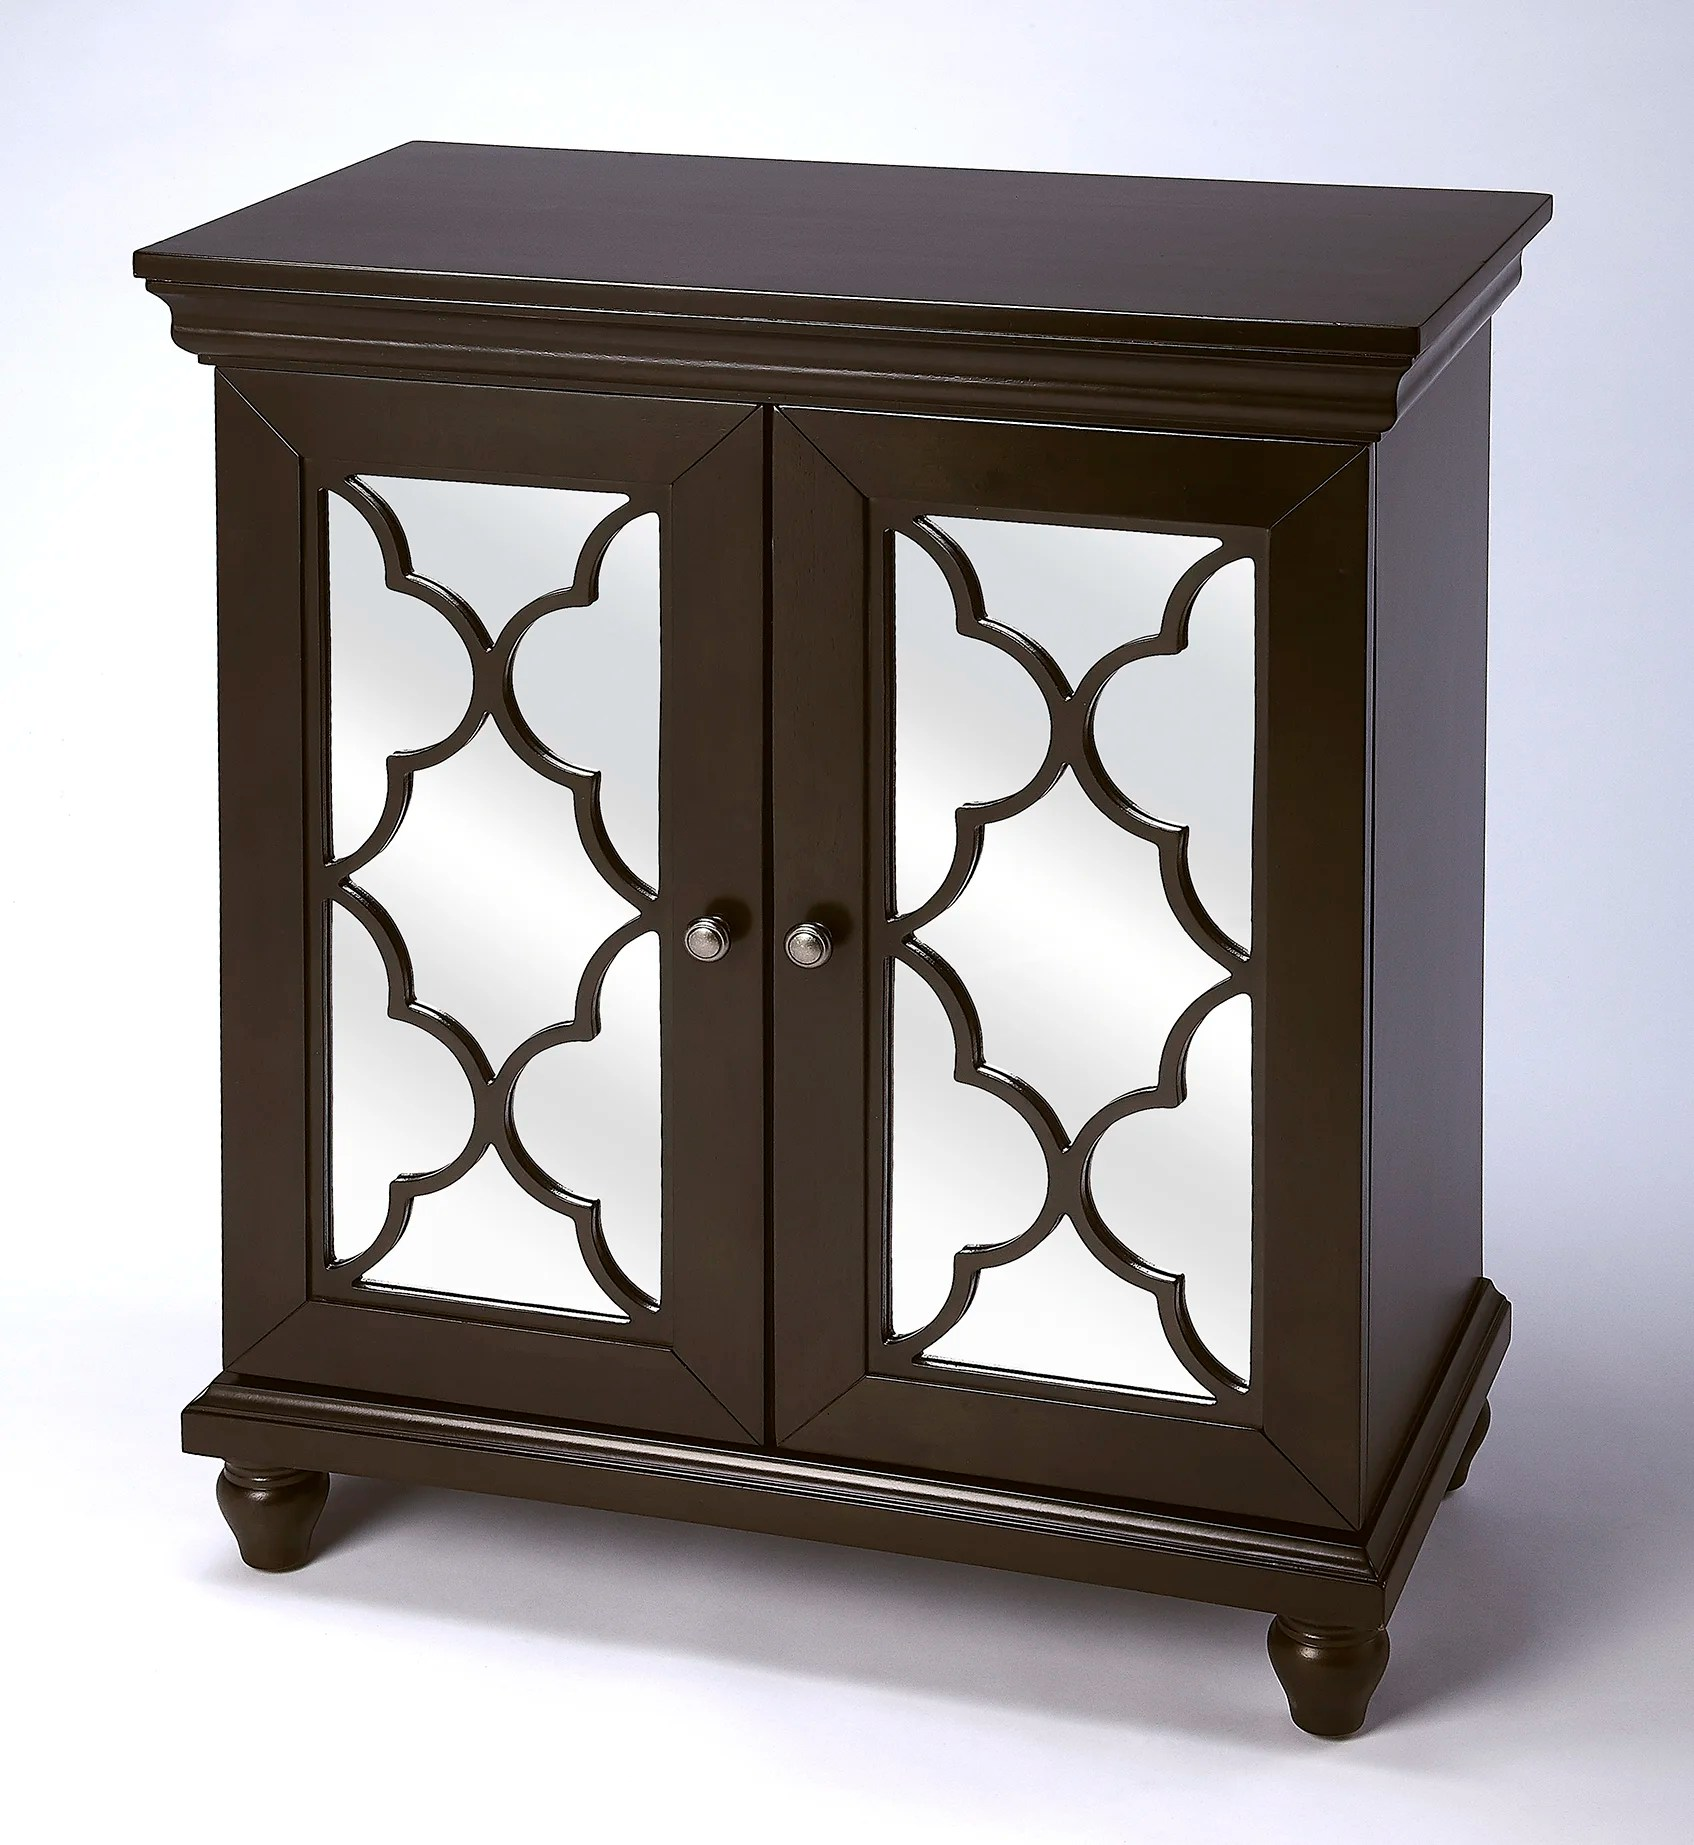 Brown Mirrored Cabinets Chests You Ll Love In 2021 Wayfair